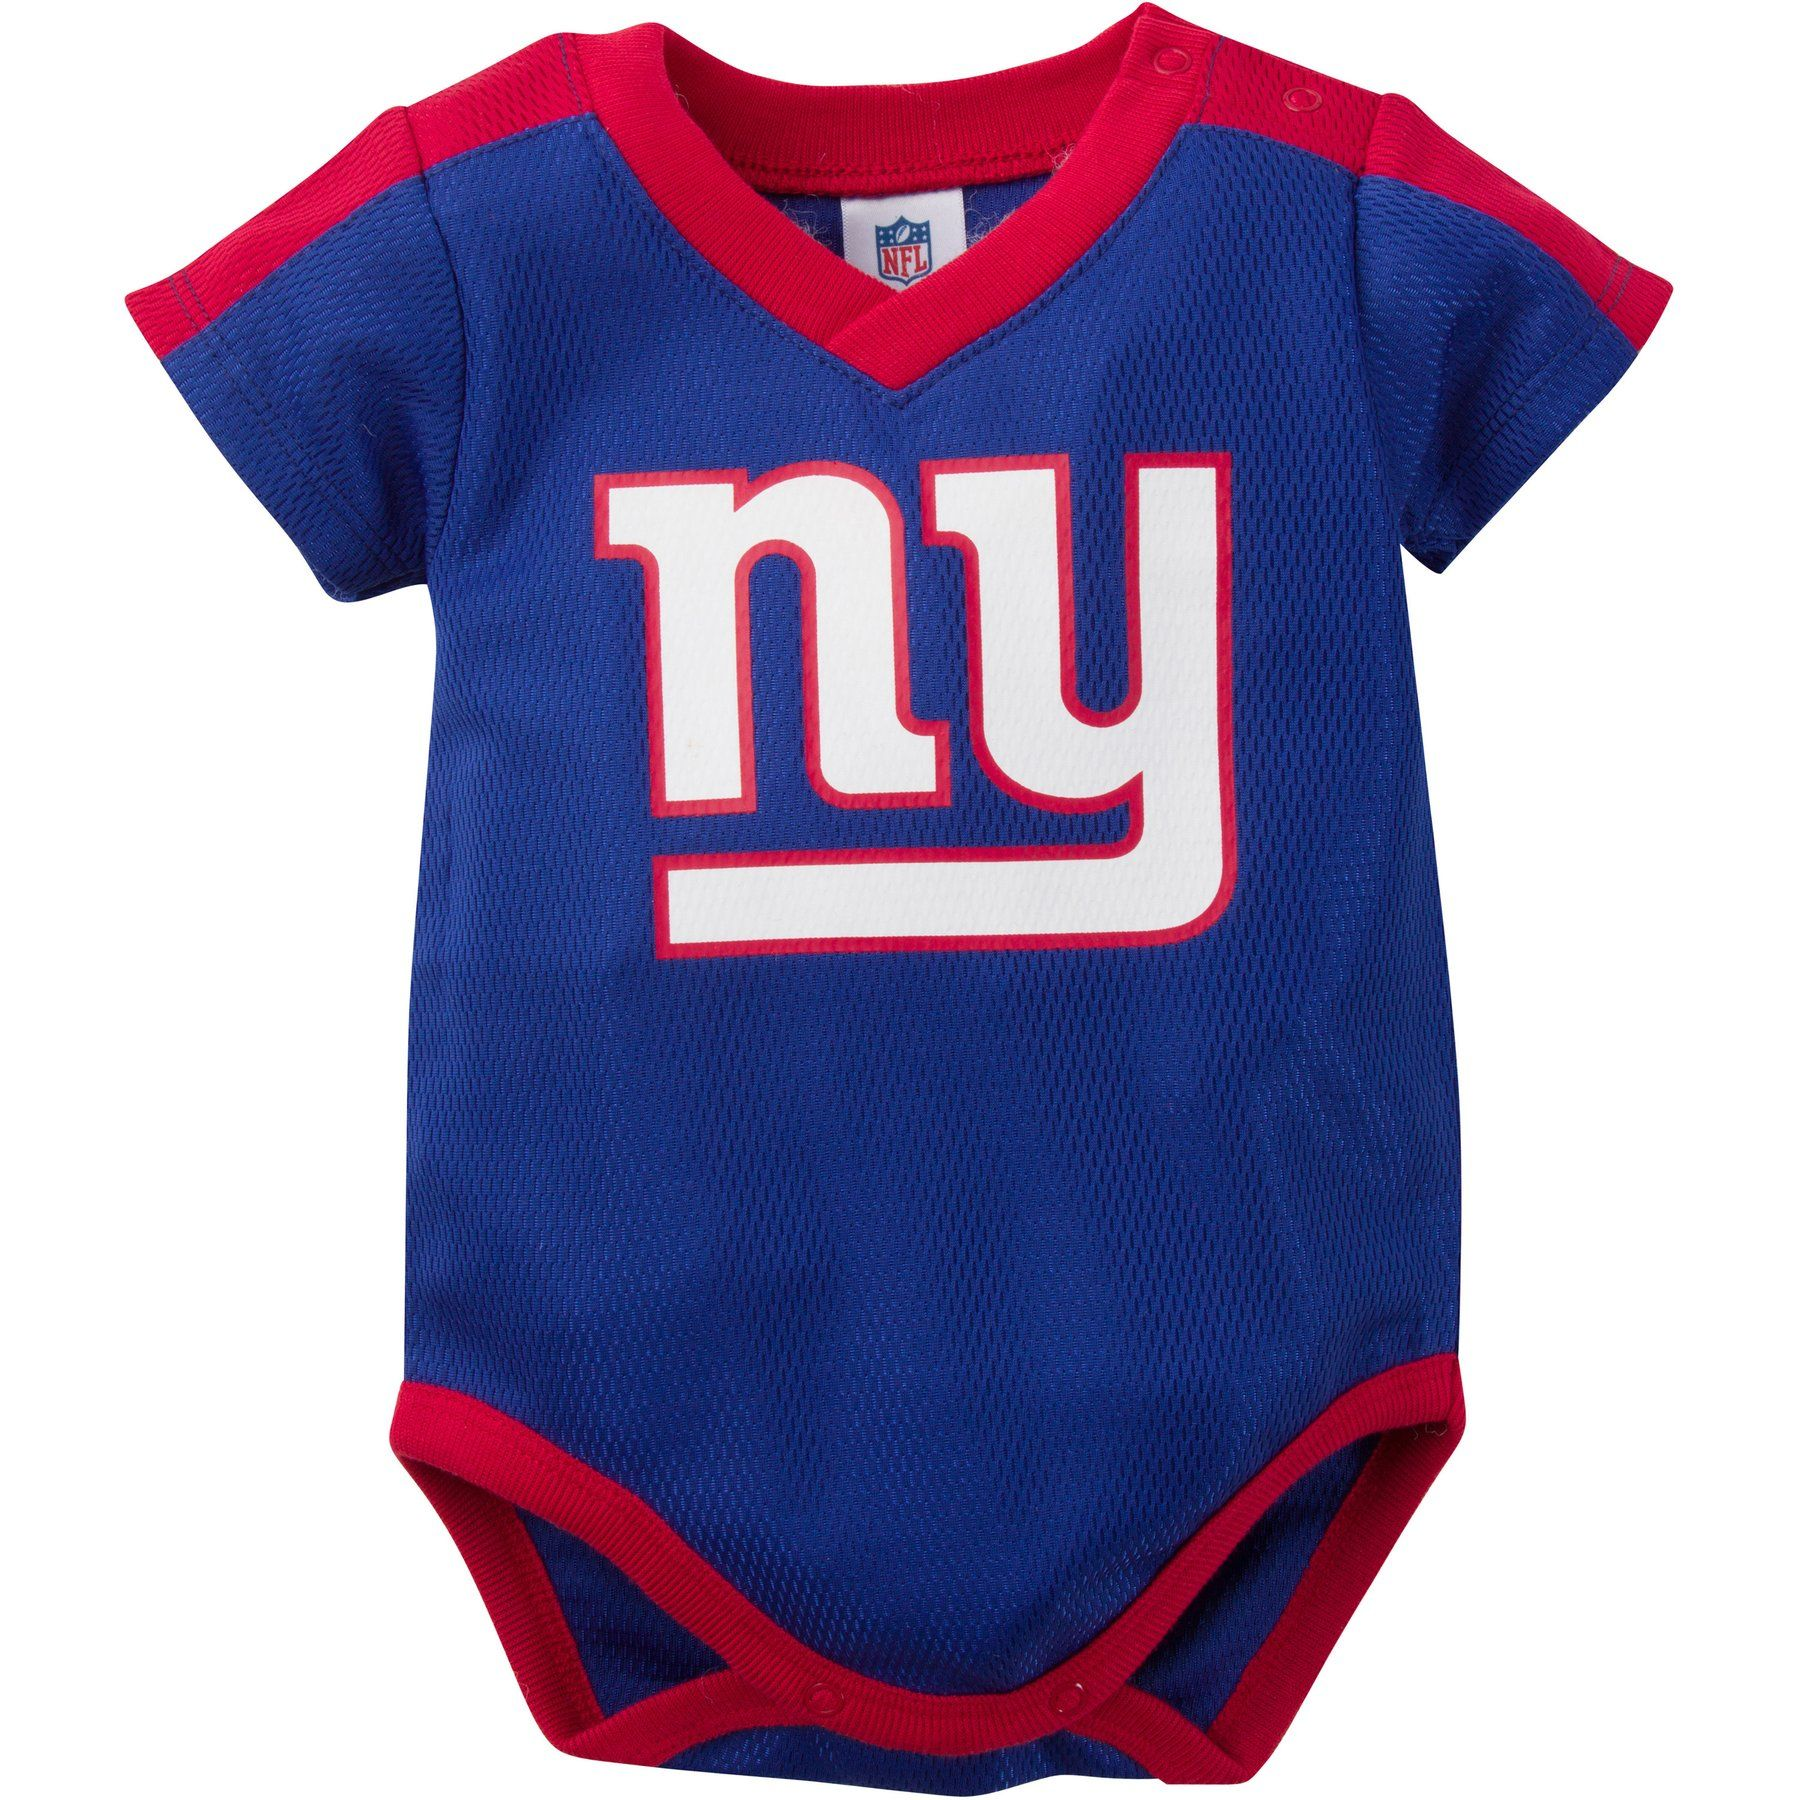 a17c59fc Giants Baby Jersey Onesie | Products I Love | New york giants jersey ...